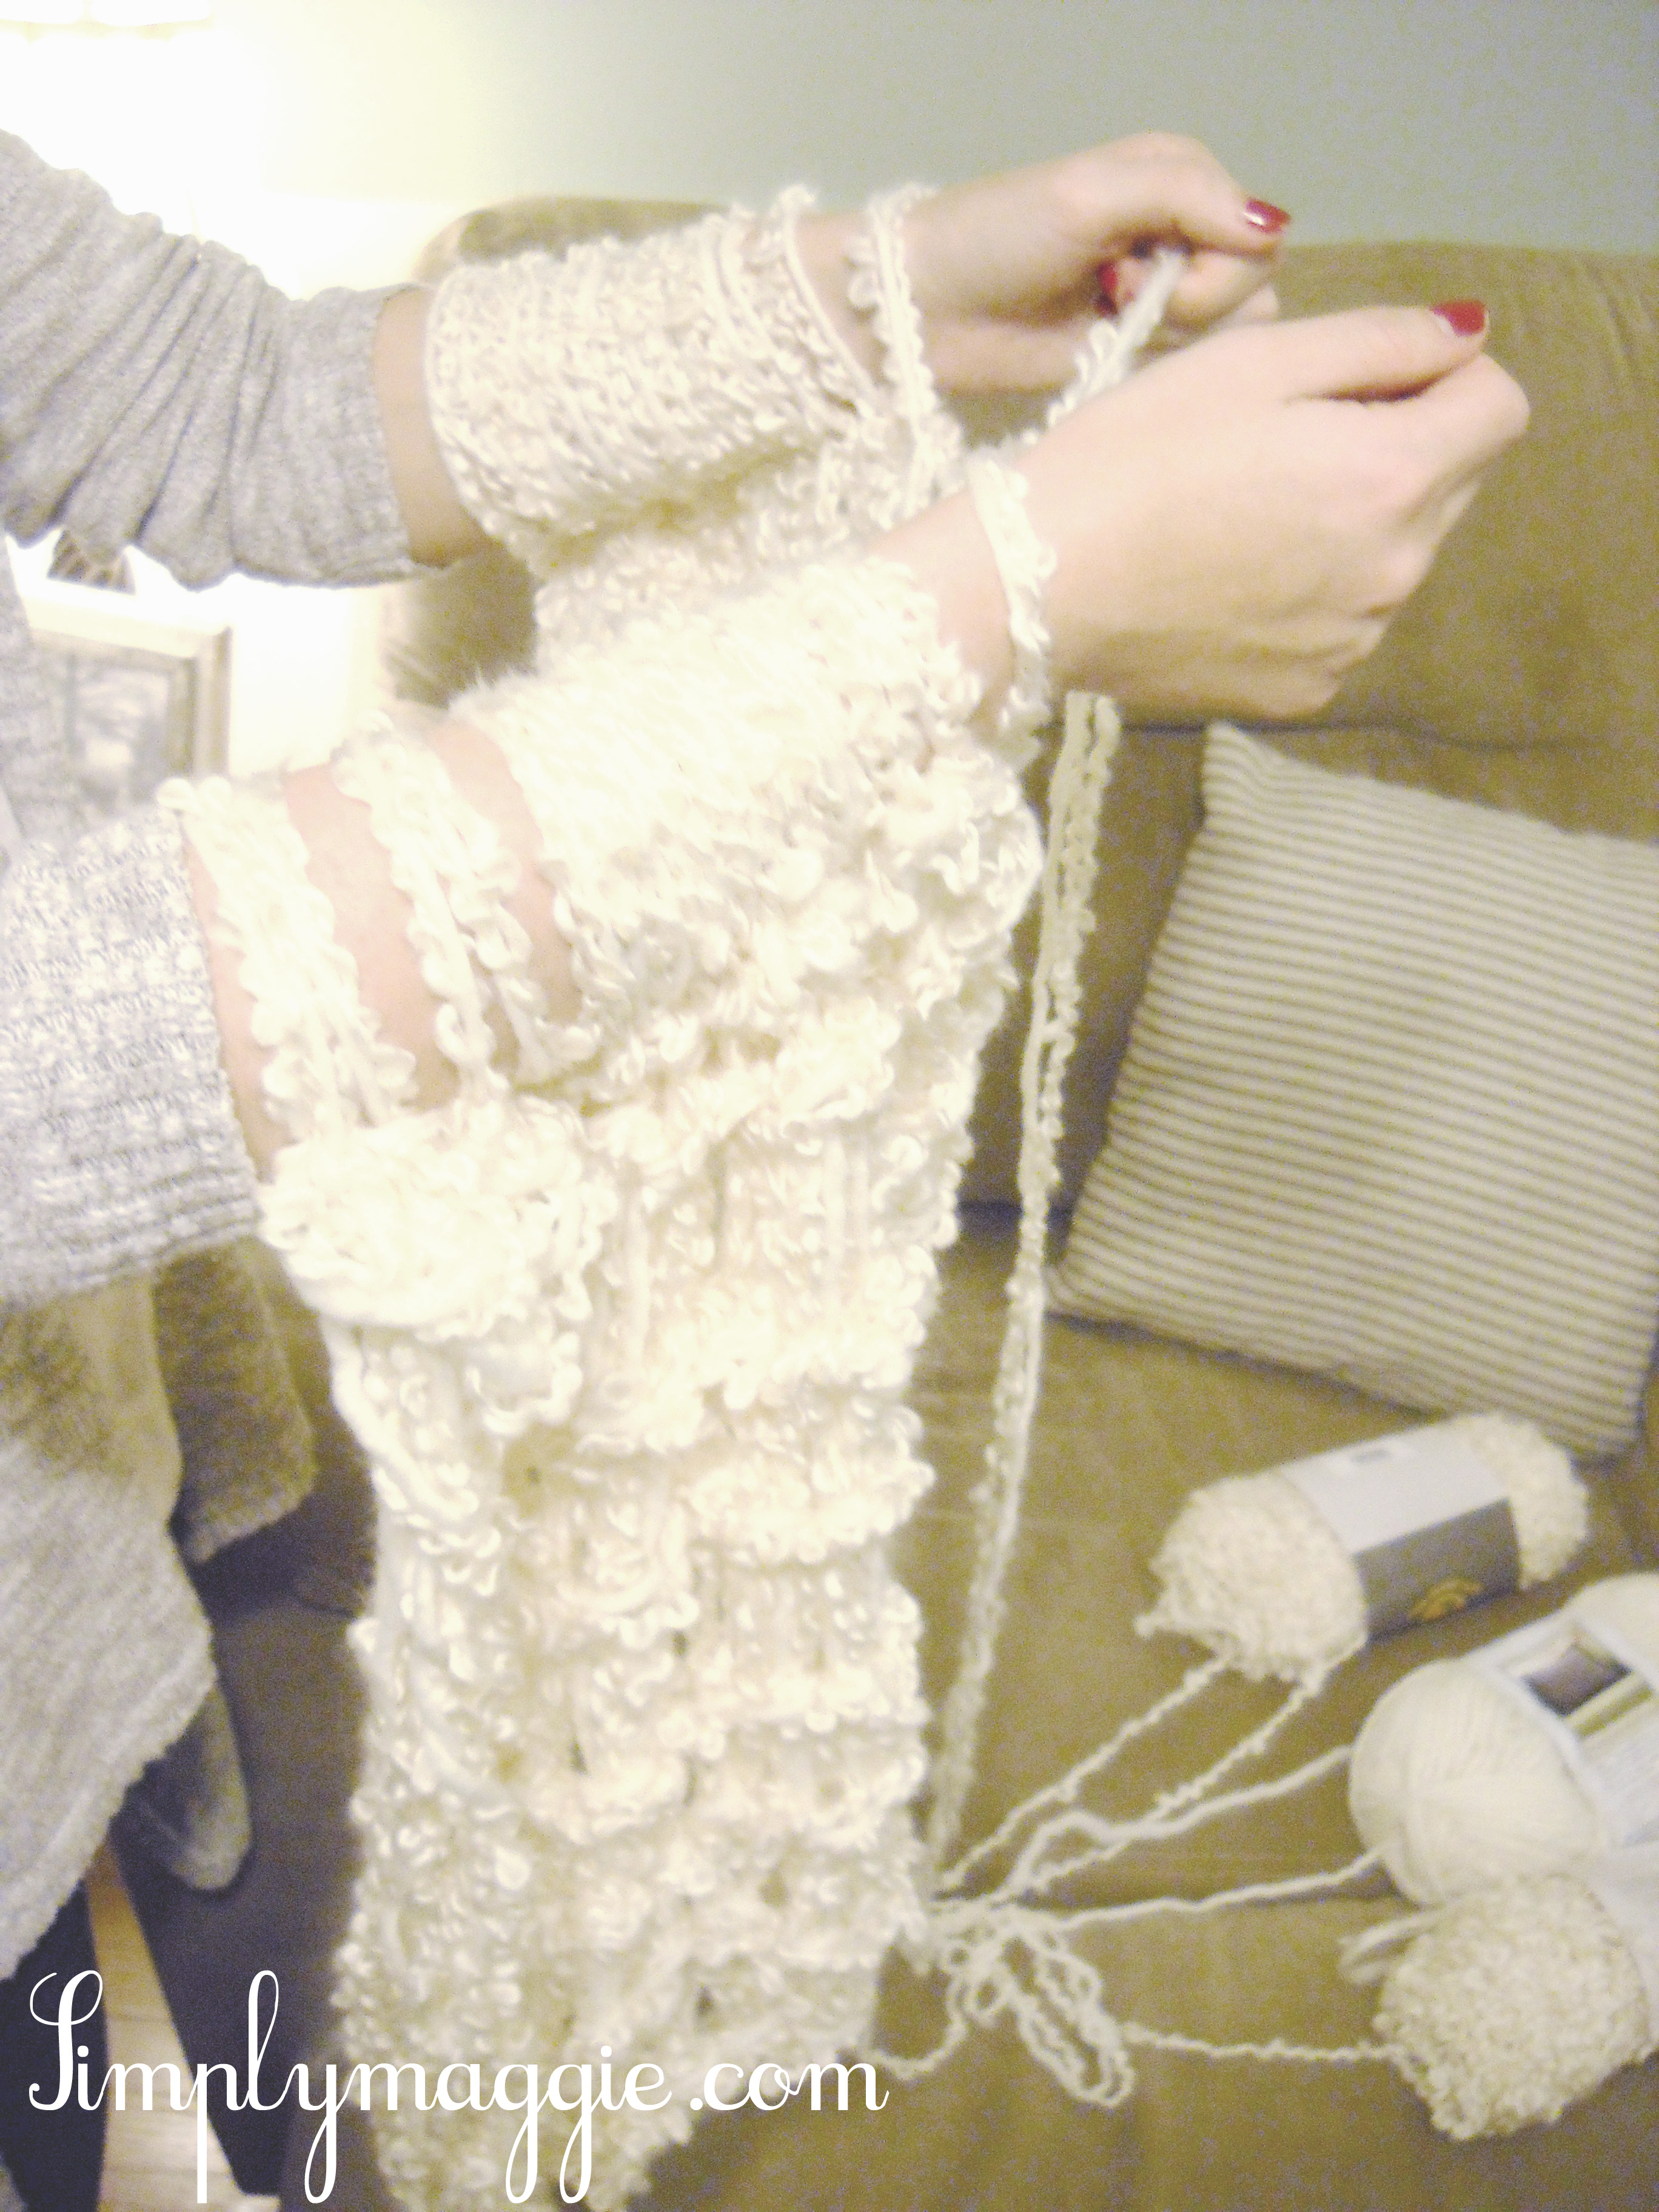 Arm Knitting Instructions : Arm knit a blanket in one hour simplymaggie